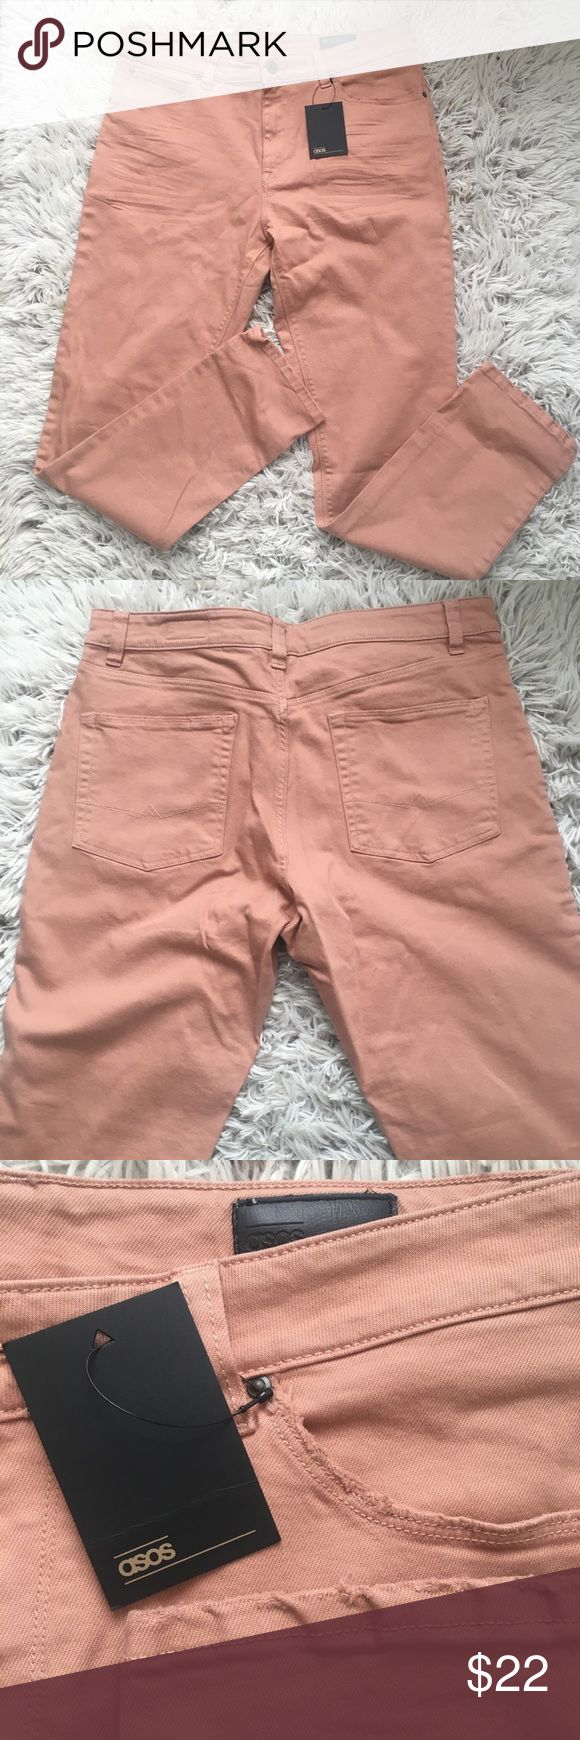 ASOS Peach Jeans Peachy/Blush colored denim. Slightly distressed at the seams. Brand new condition, never worn.   Waist: 36 Inseam: 32 ASOS Jeans Straight